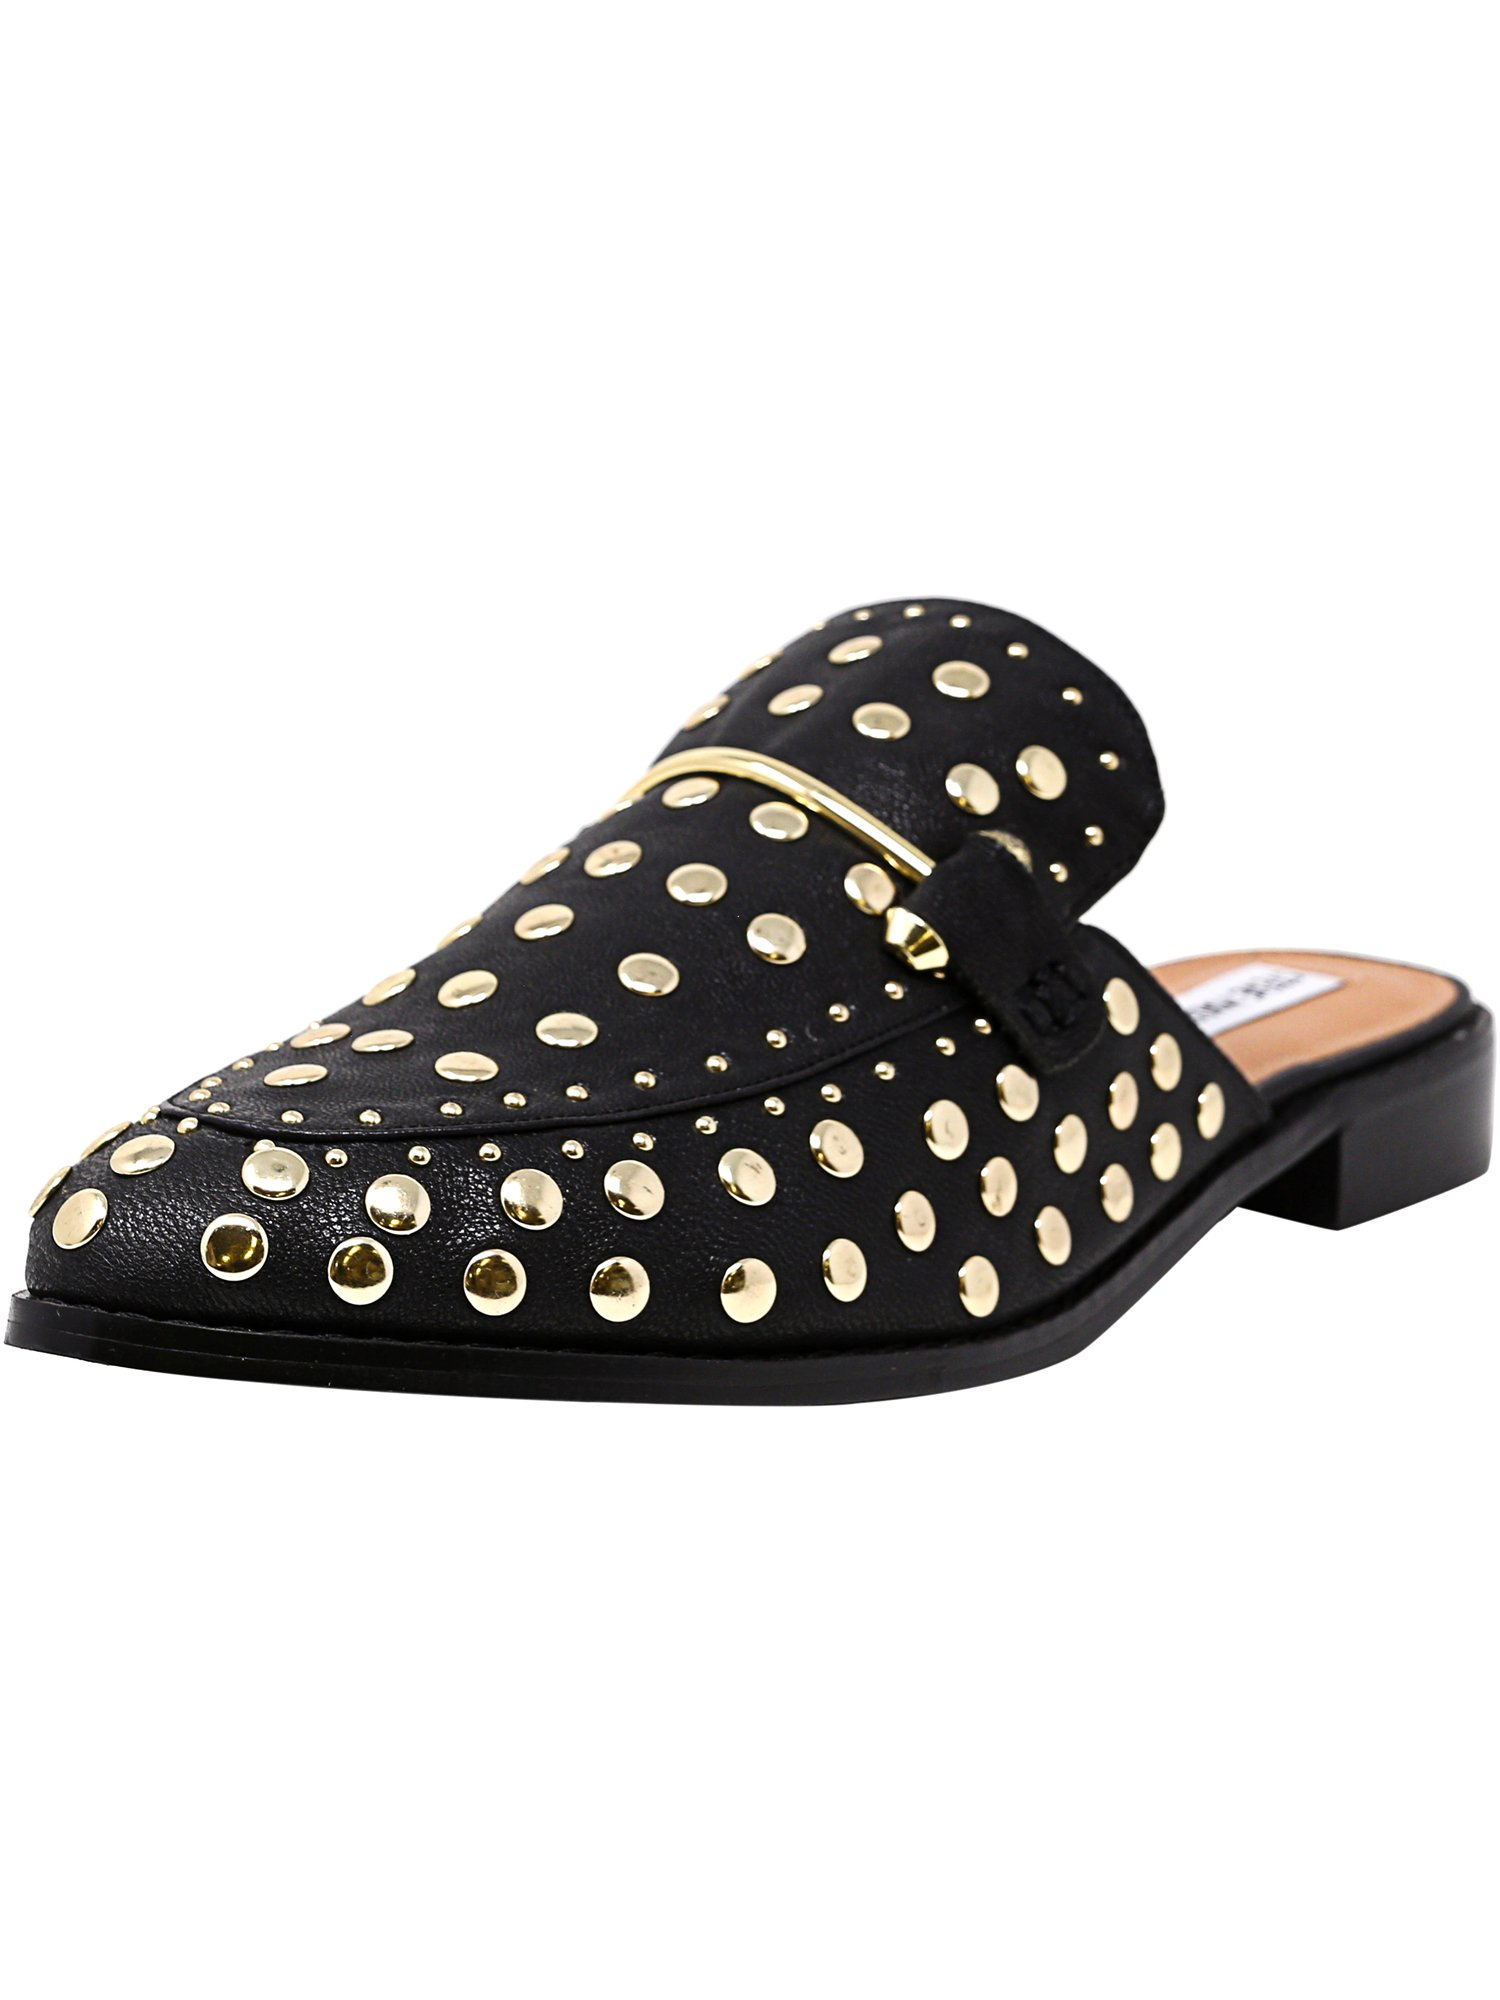 f069c24349e Steve Madden Women's Laaura-S Black With Studs Leather Mules - 11M